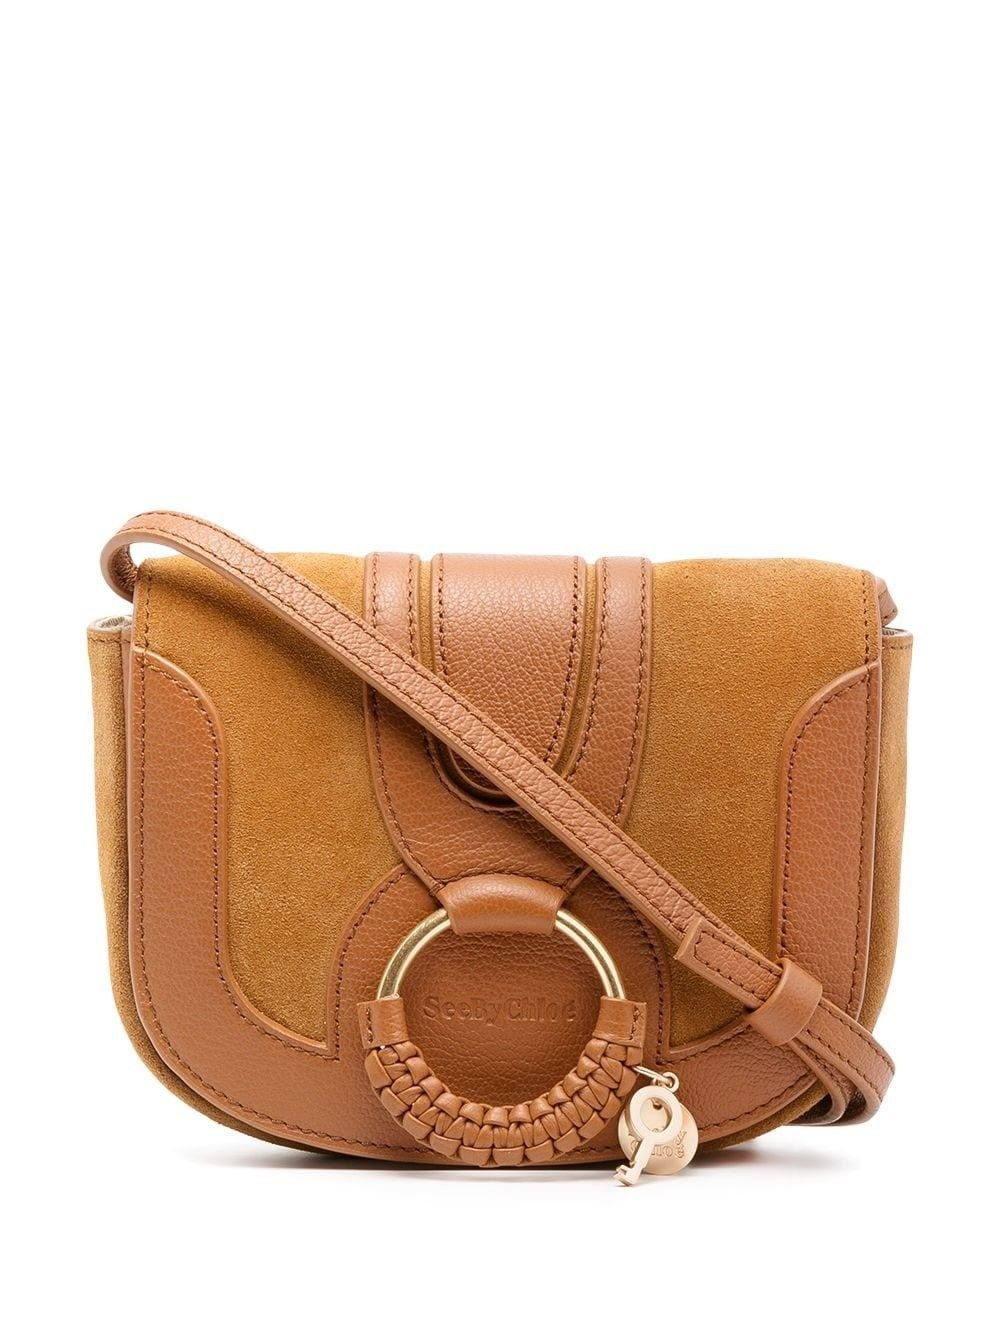 See By Chloé SEE BY CHLO WOMEN'S CHS18AS901417242 BROWN LEATHER SHOULDER BAG